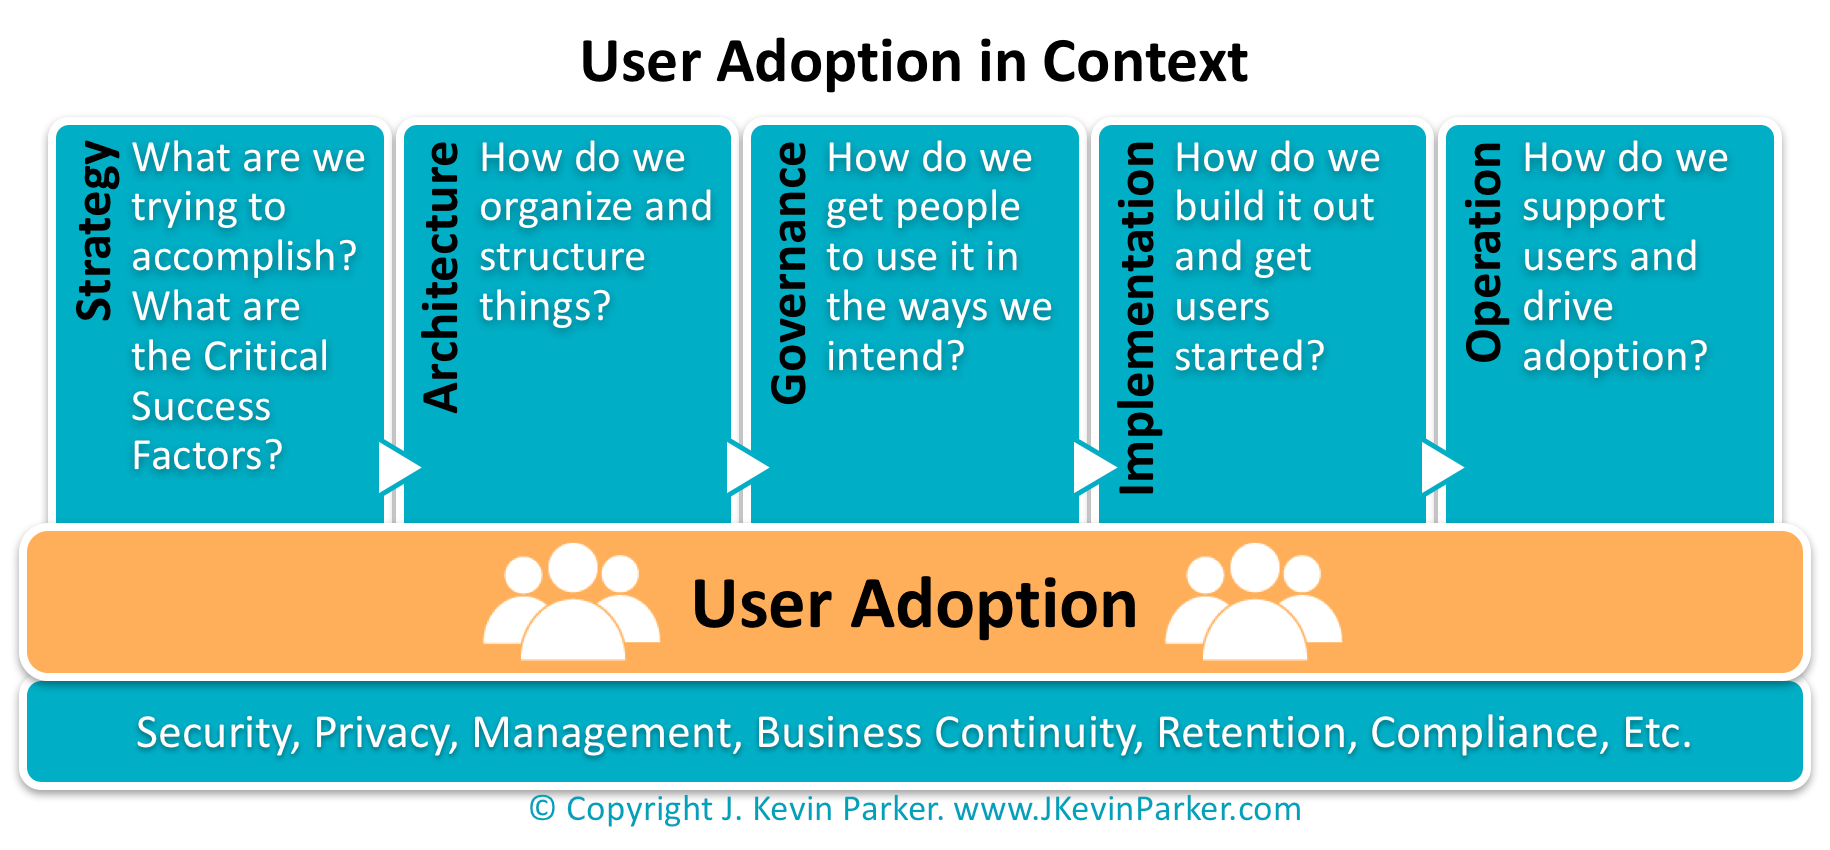 Figure: User Adoption in Context